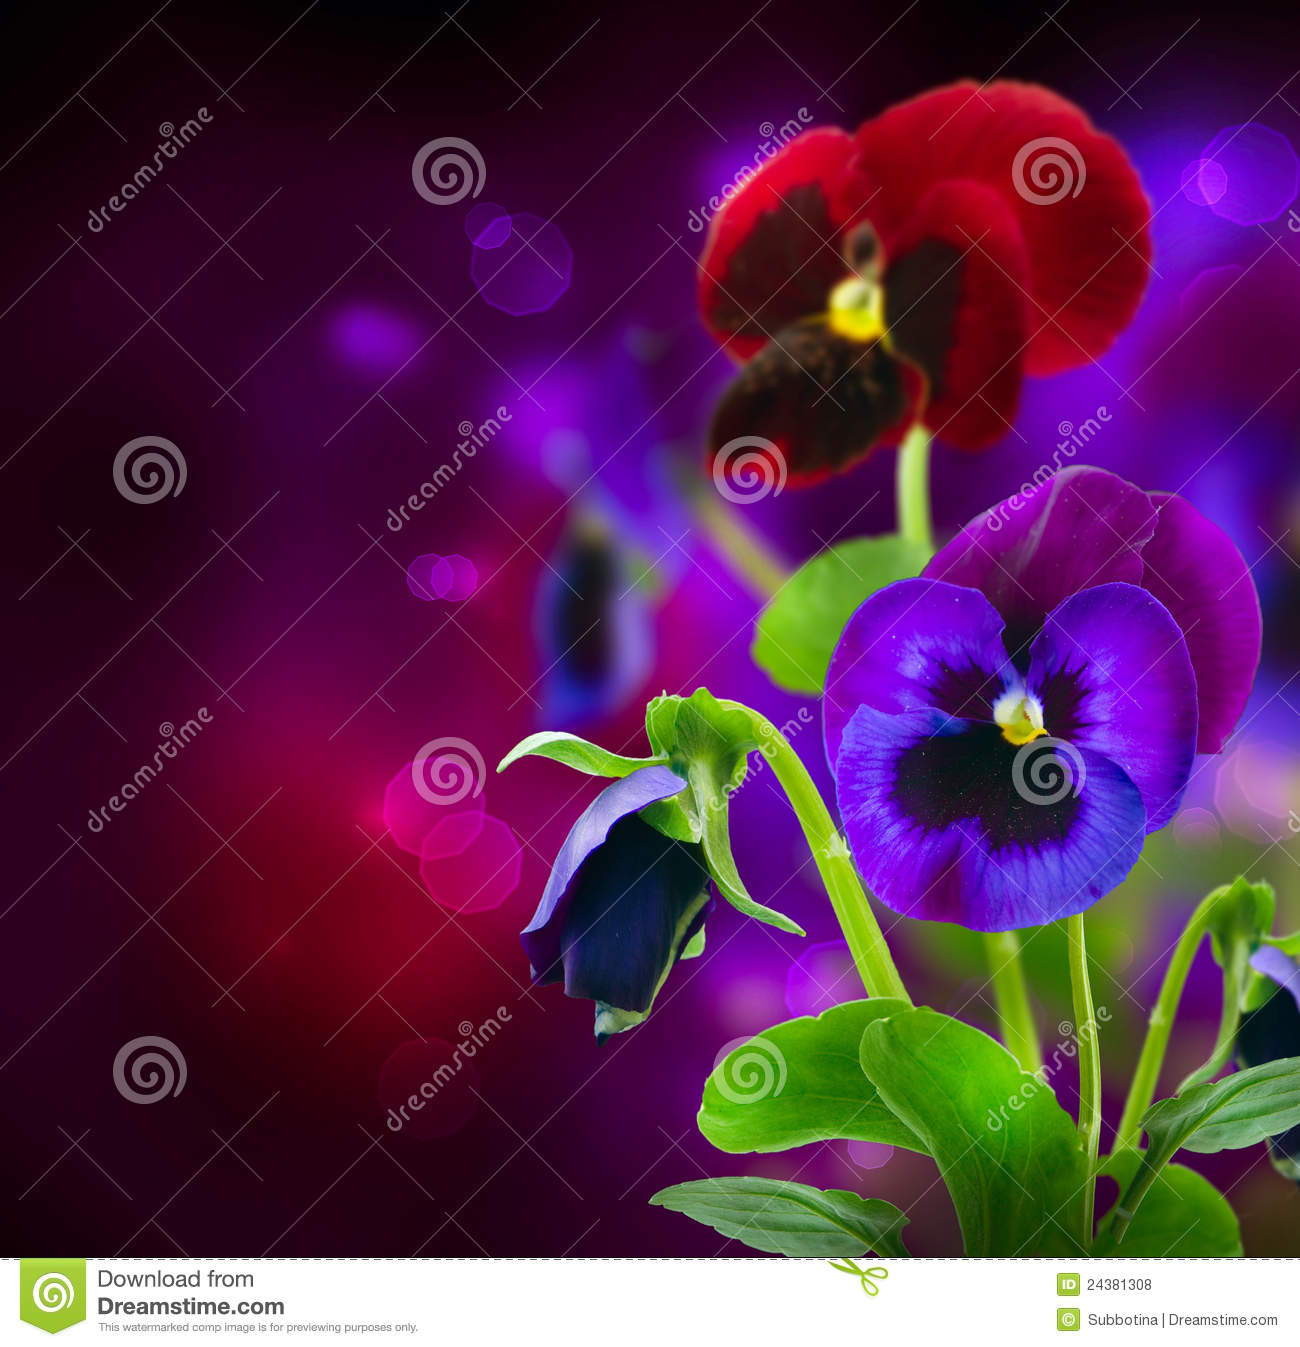 Pansy Flowers over Black